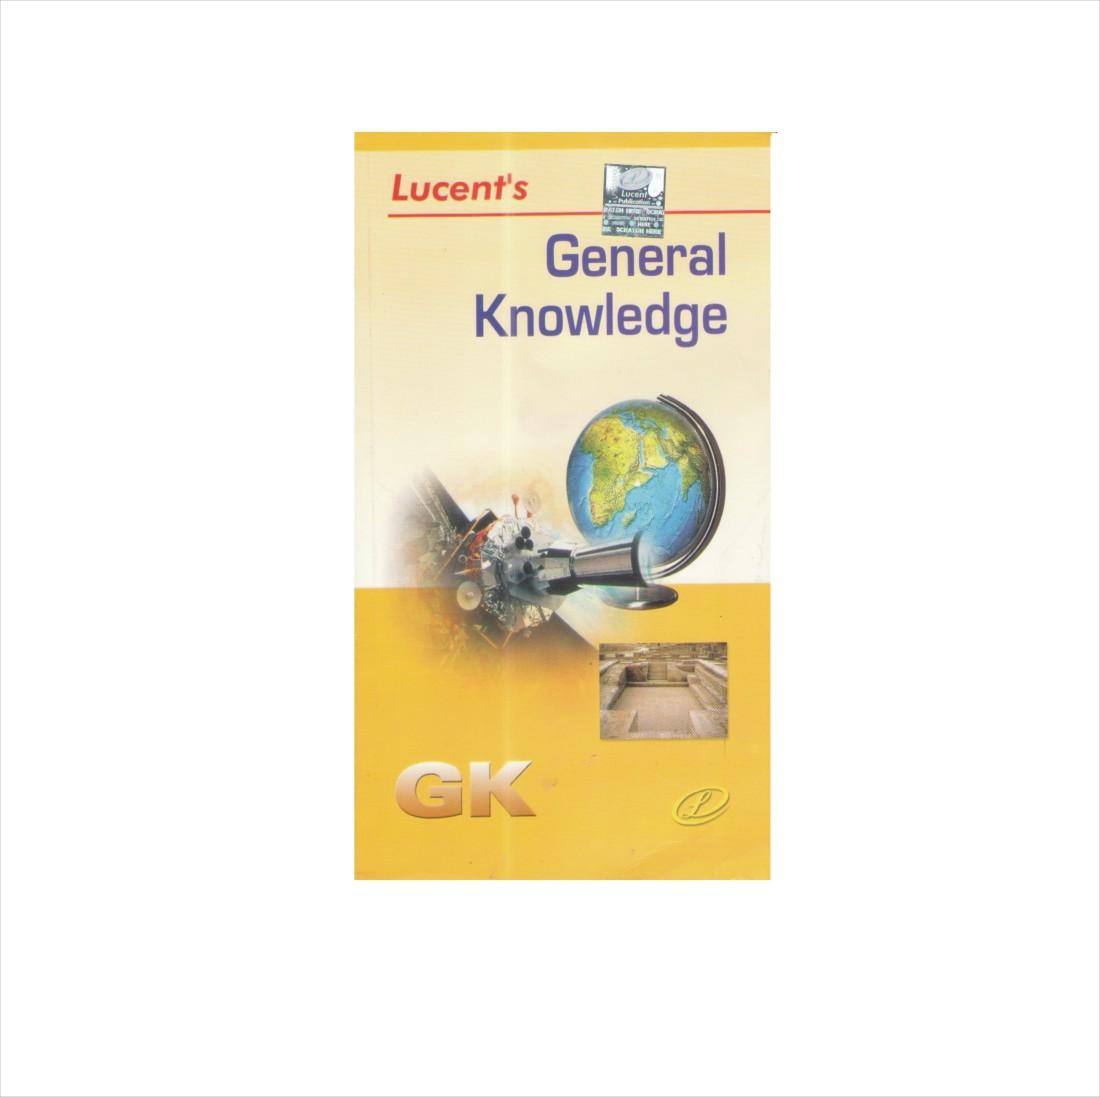 Lucent's - General Knowledge 2019 Edition  (english, Paperback, Lucent's EXPERT Team) price in India.